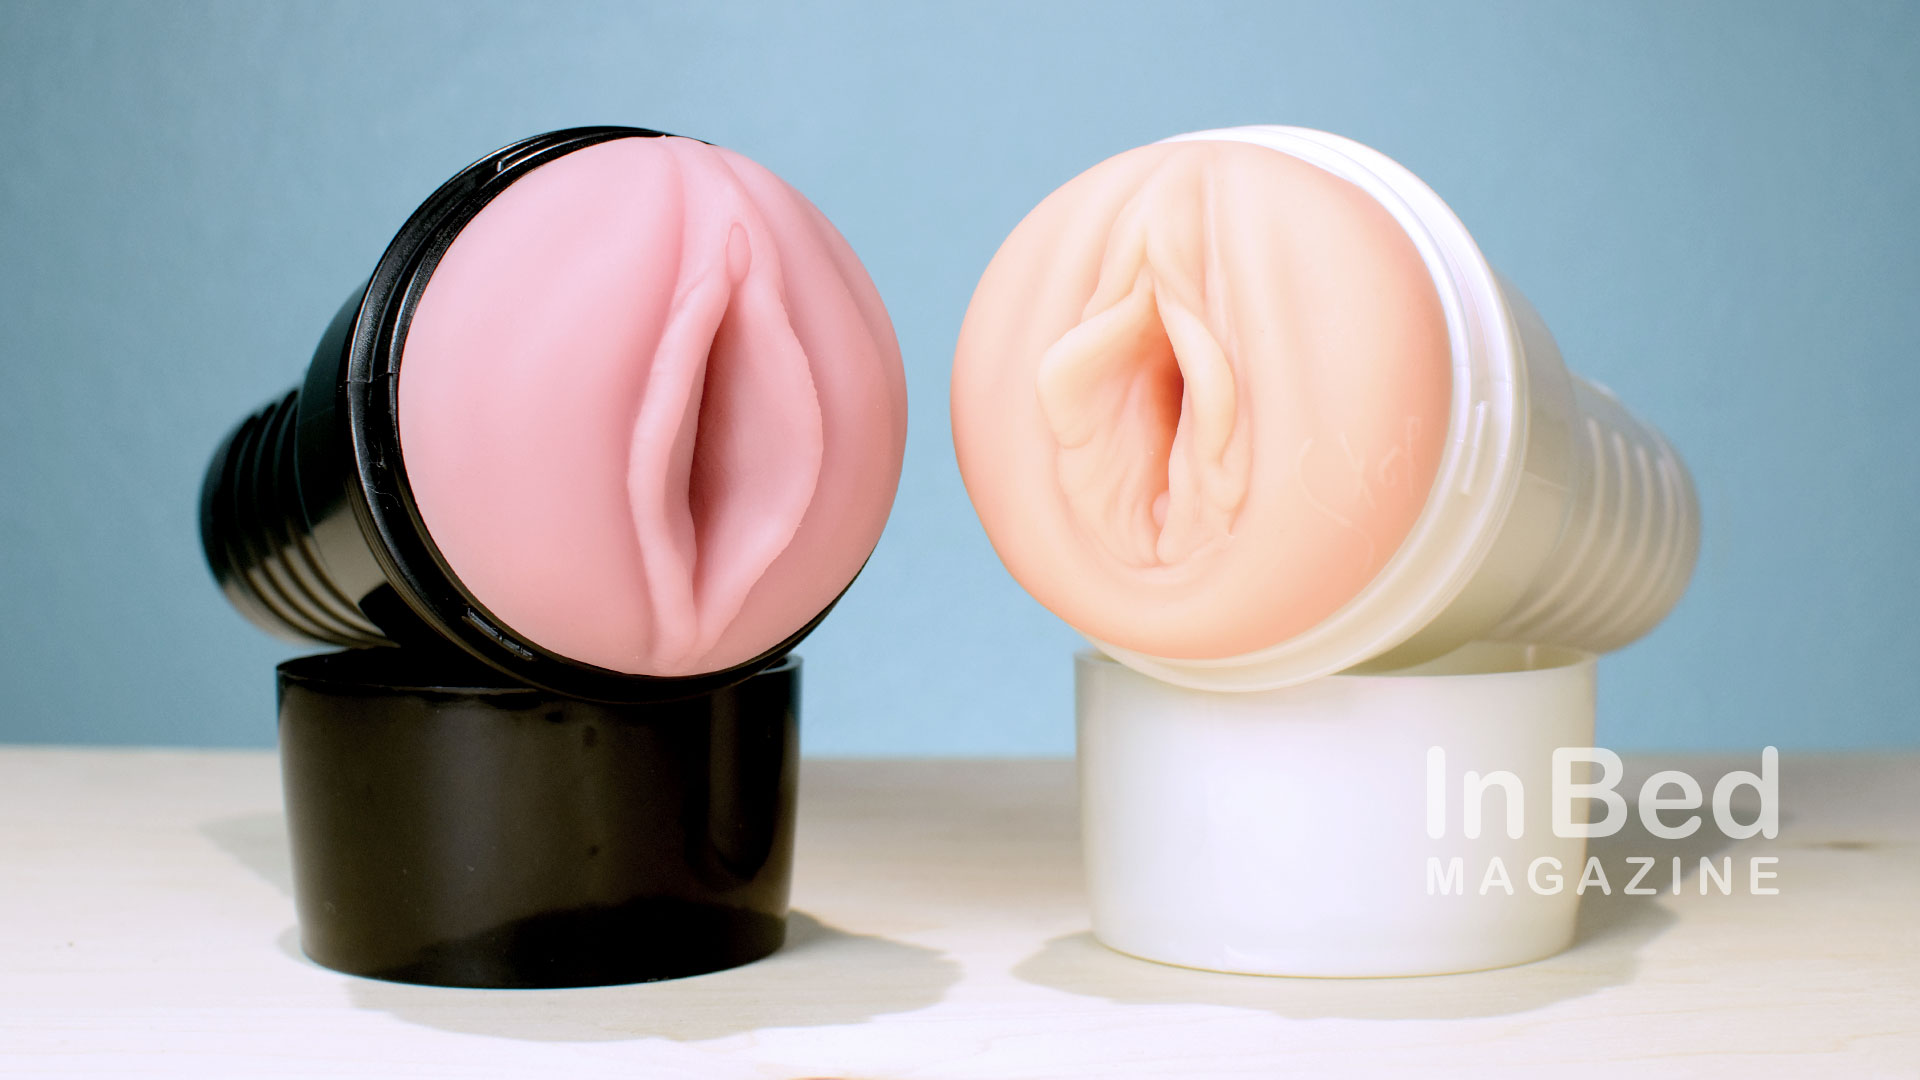 Male Pleasure Products Fleshlight Youtube Features